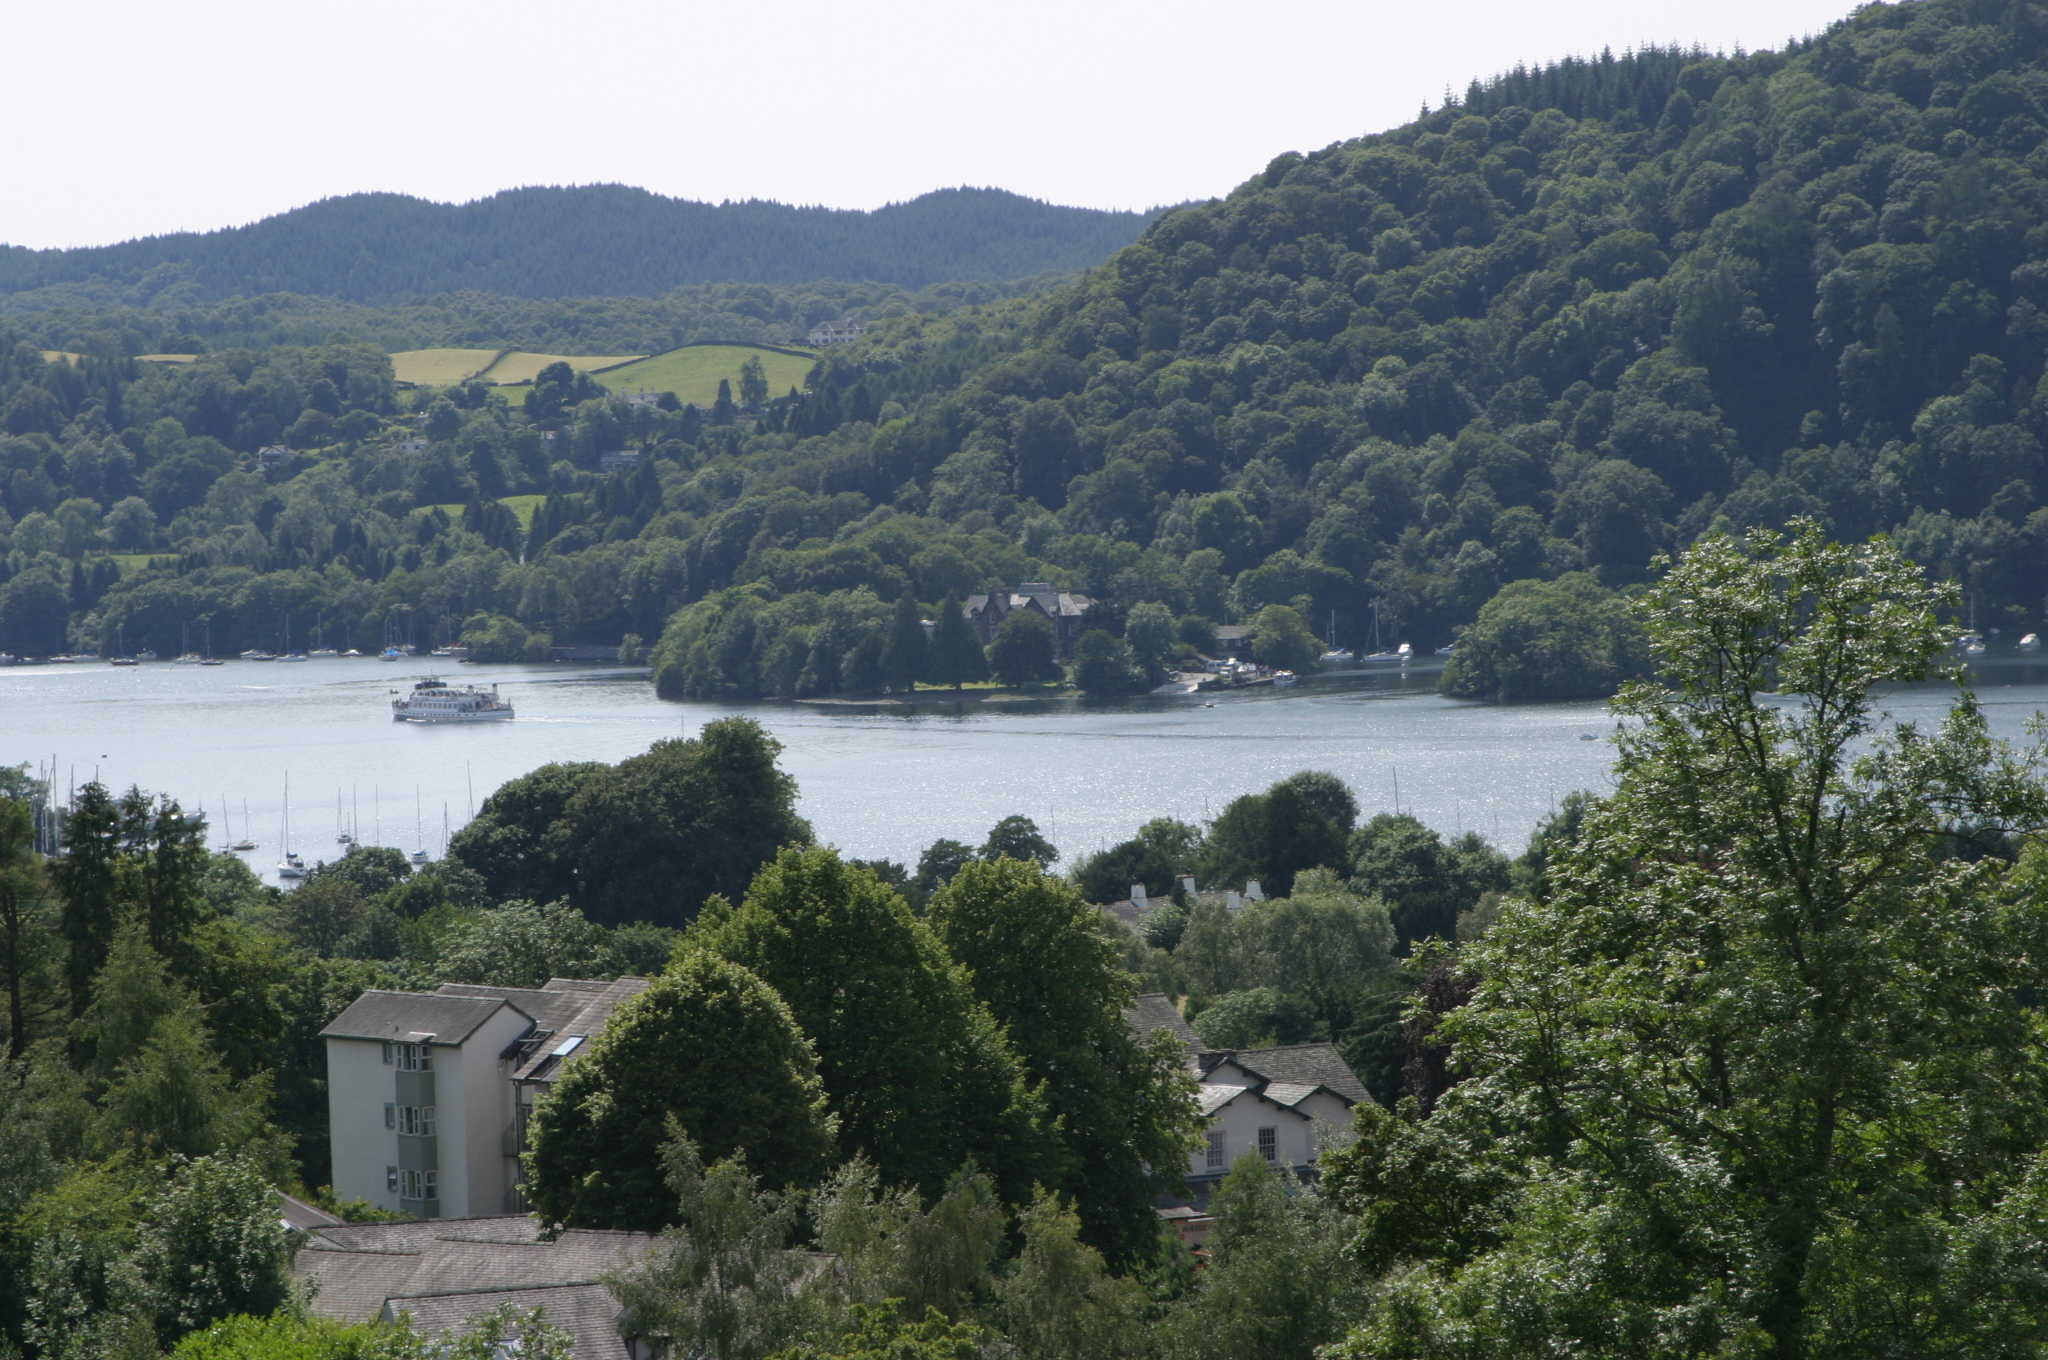 A beautiful view of Lake Windermere and its surrounding mountains from The Attic room at Blenheim Lodge. Admire spectacular scenery from your room and enjoy the Lake close up on Windermere Cruise ferry which you can board just 7 minutes' walk from Blenheim Lodge.